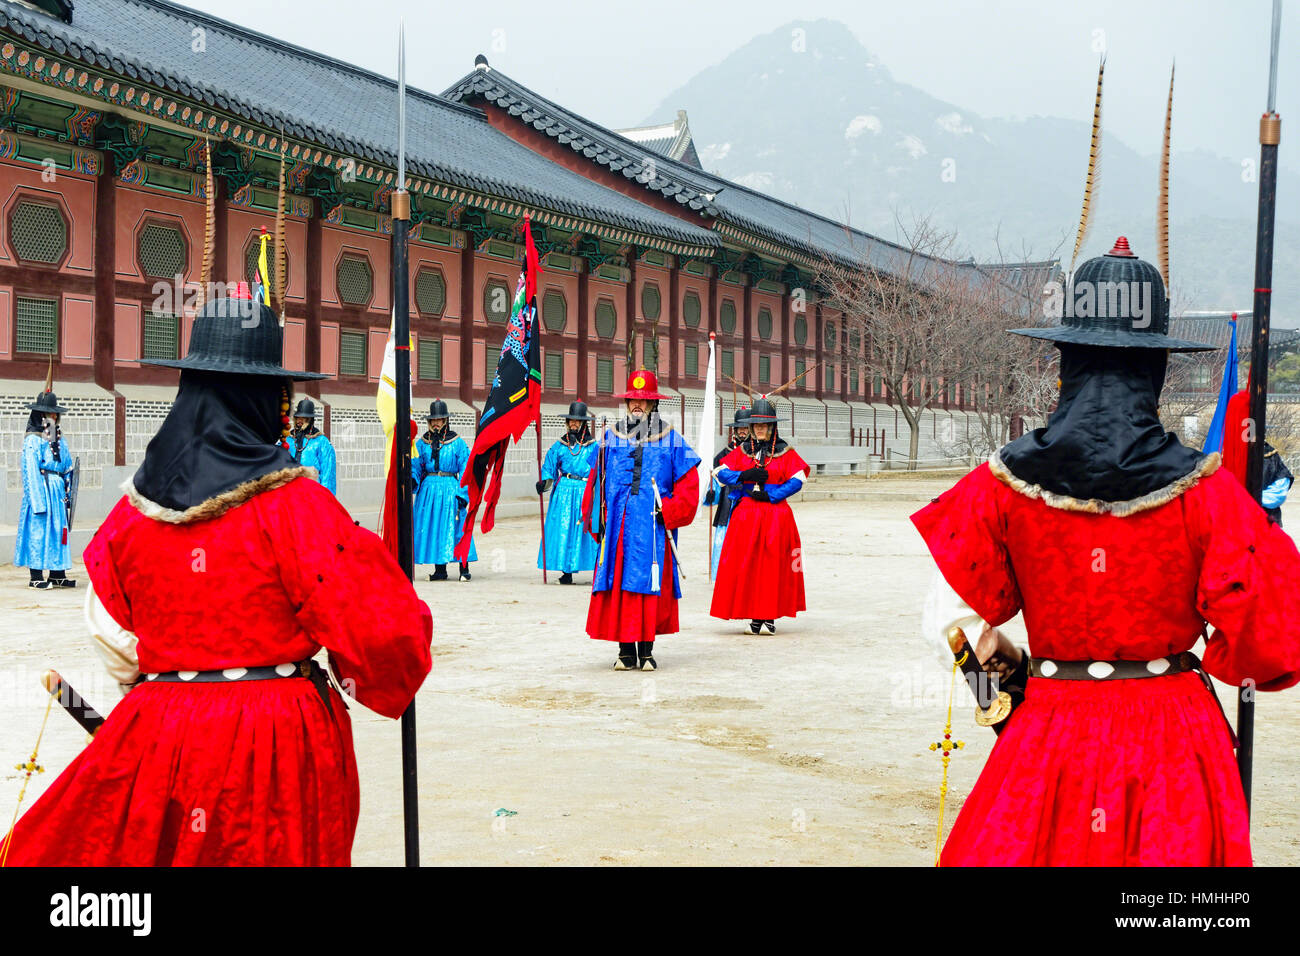 Changing of the Royal Guards Ceremony, Gyeongbokgung Palace, Seoul, South Korea - Stock Image